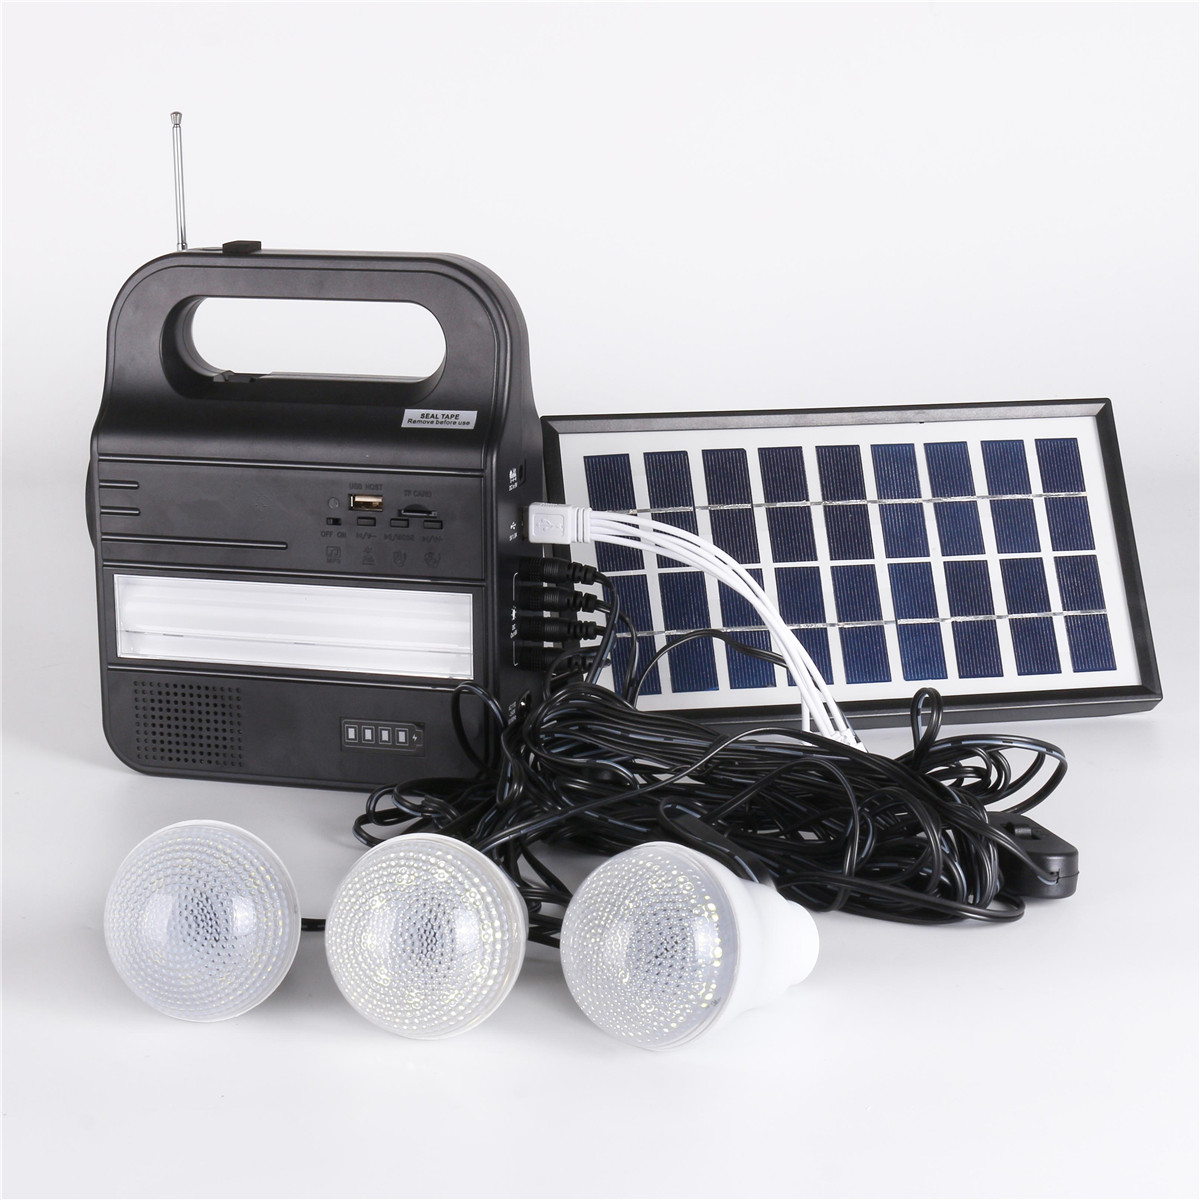 Portable Home Outdoor Solar Panels Charging Generator Power generation System 6V 3W lead acid batteries Energy USB ChargerPortable Home Outdoor Solar Panels Charging Generator Power generation System 6V 3W lead acid batteries Energy USB Charger